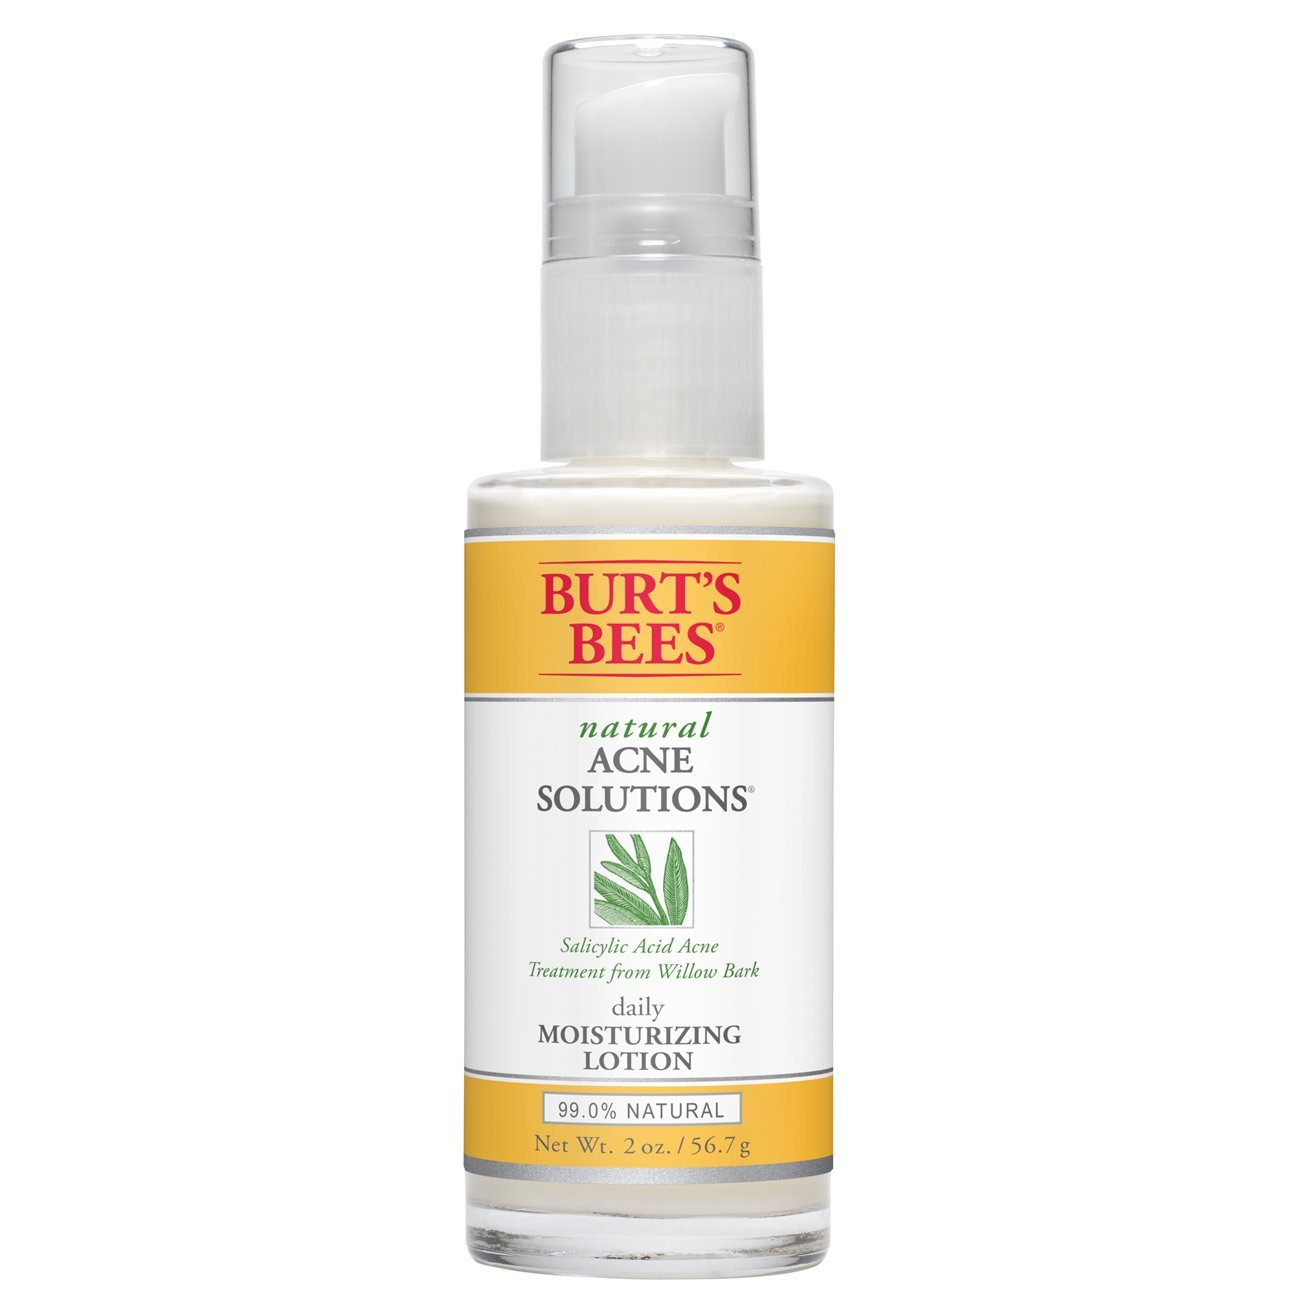 Burt's Bees Natural Acne Solutions Pore Refining Scrub, Exfoliating Face Wash for Oily Skin, 4 Ounces Burt' s Bees 00179-10